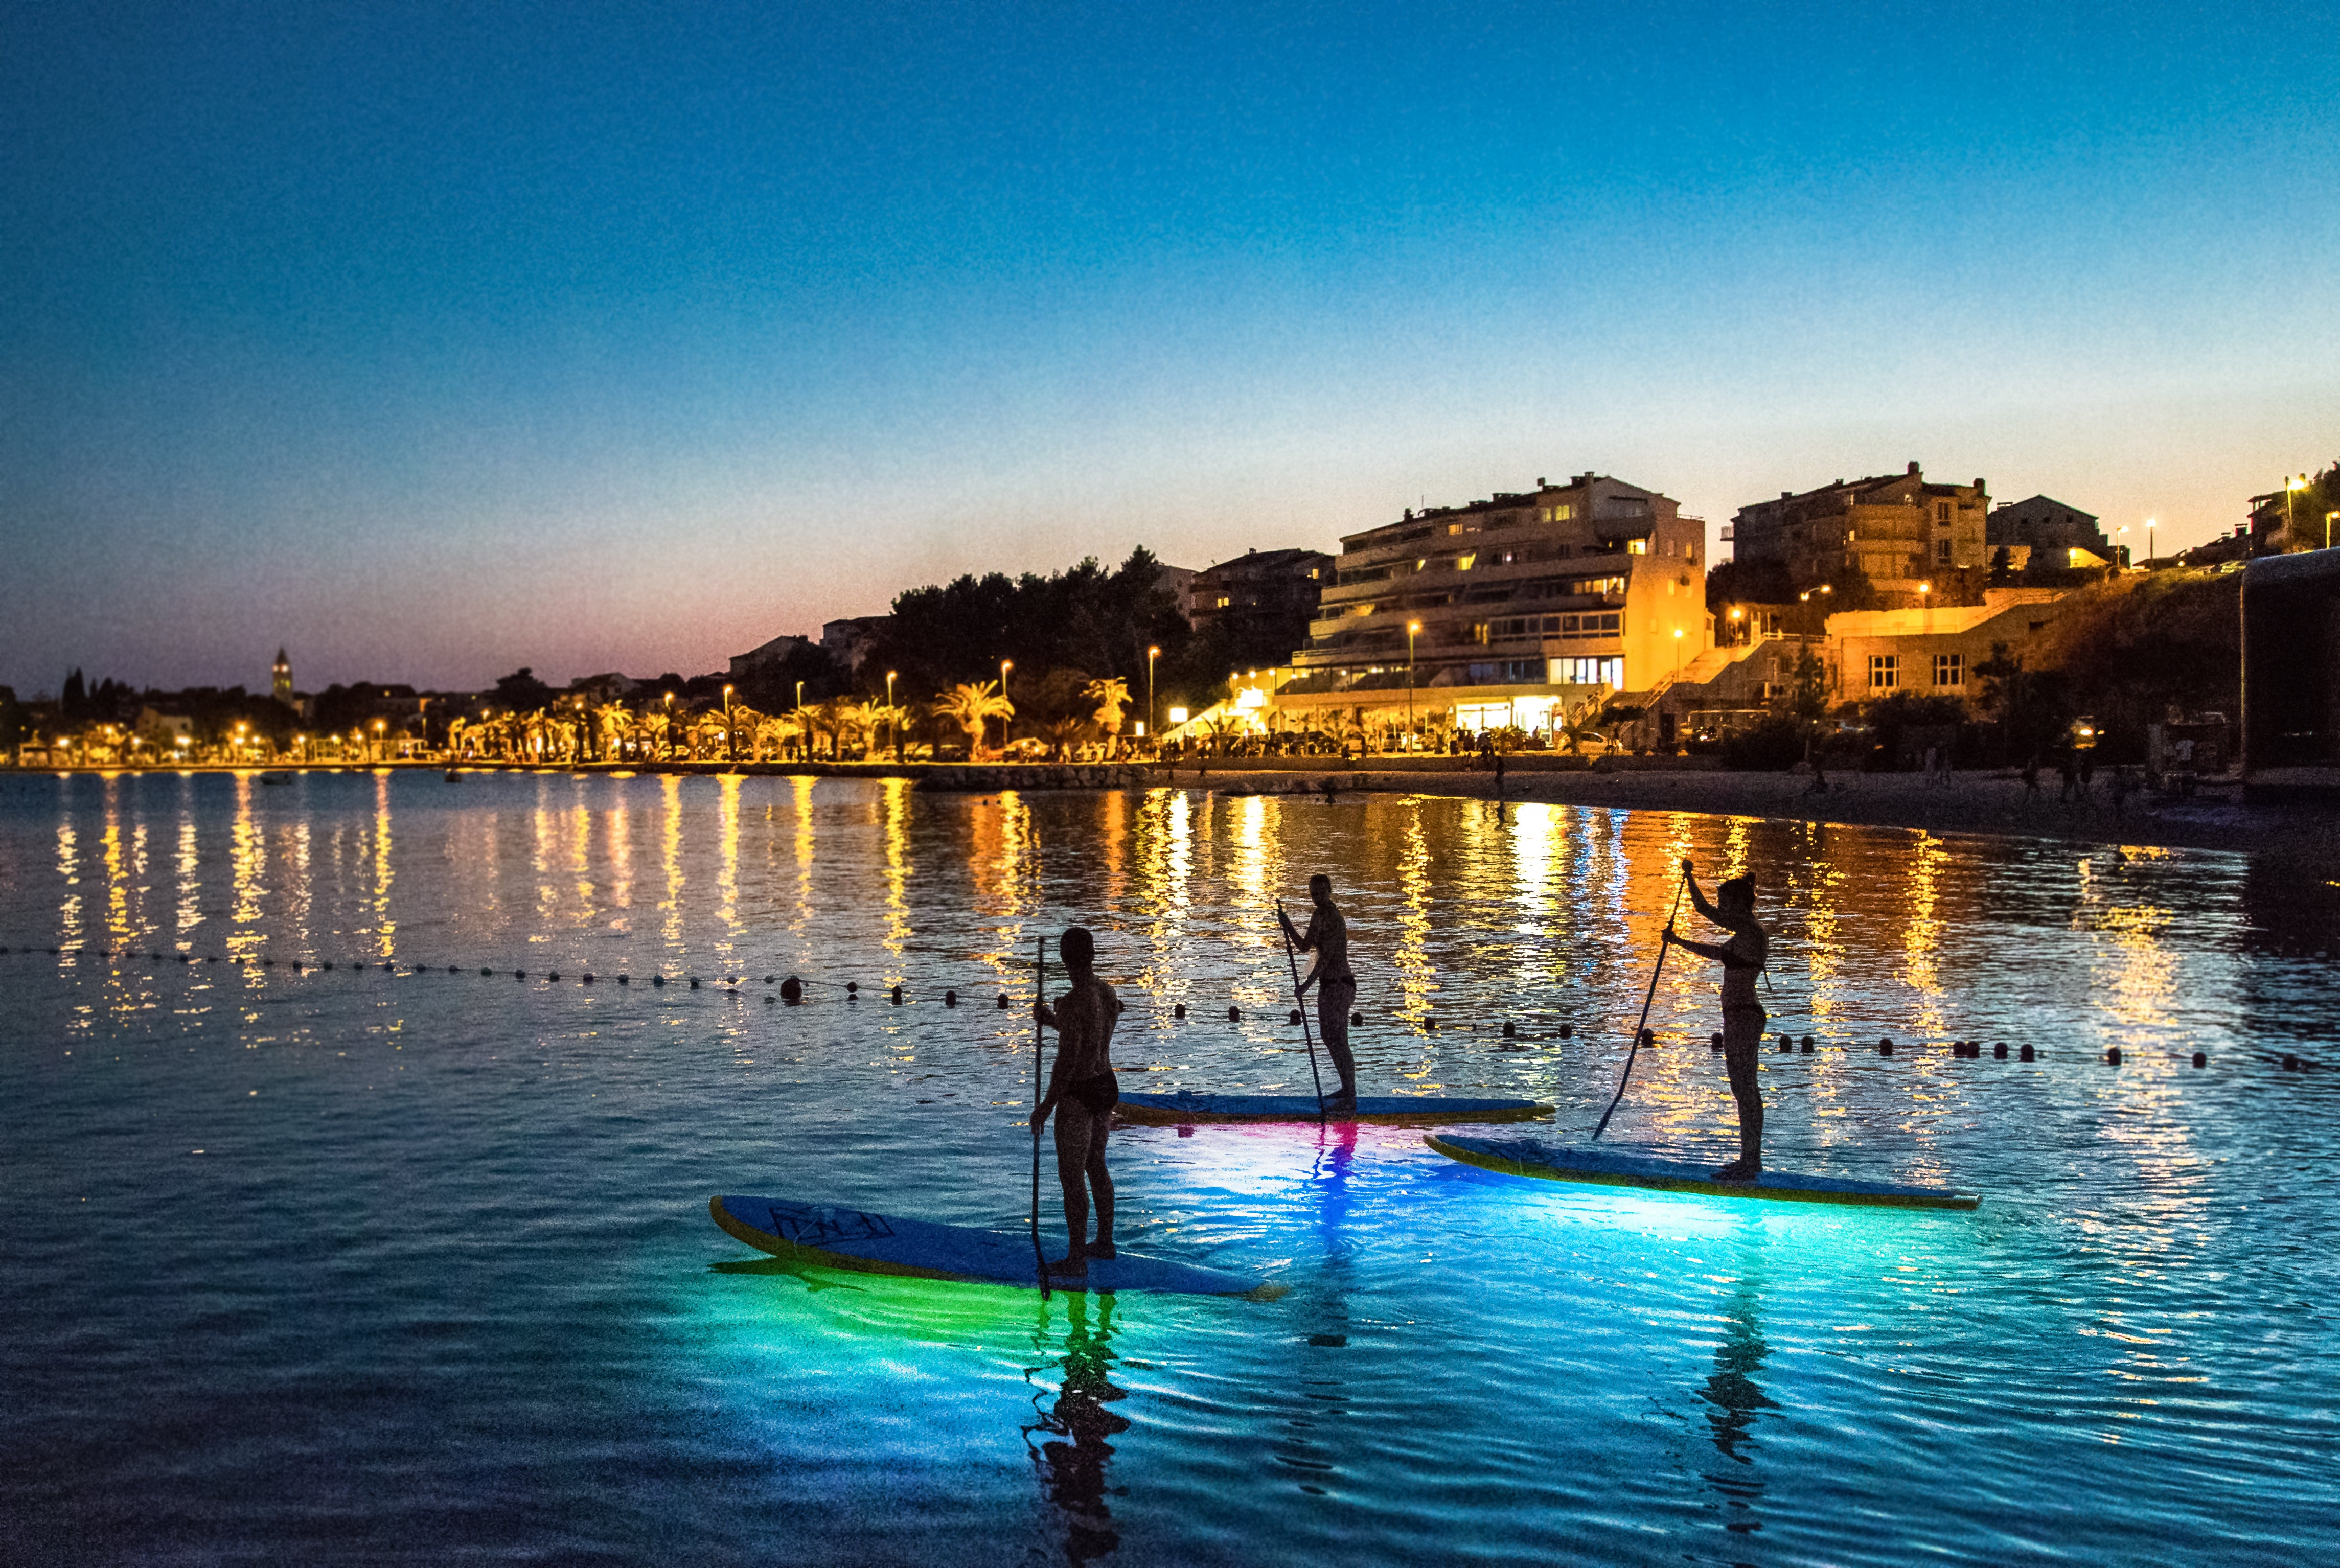 REVIEW: GLOW PADDLEBOARDING WITH ADRIATIC SUP